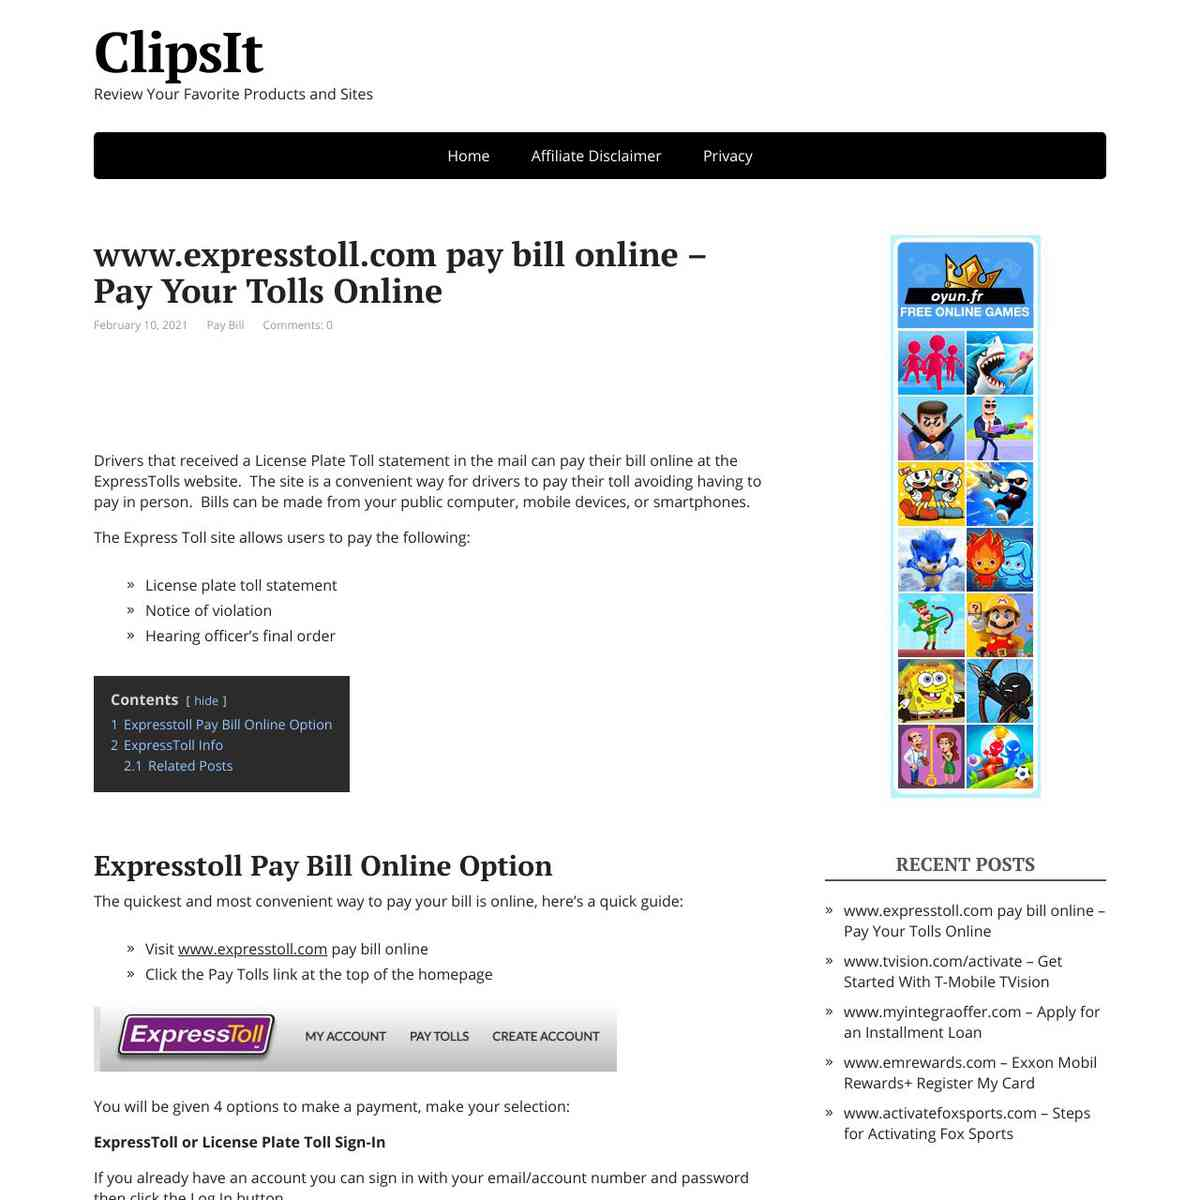 Express Tolls Pay Bill Online